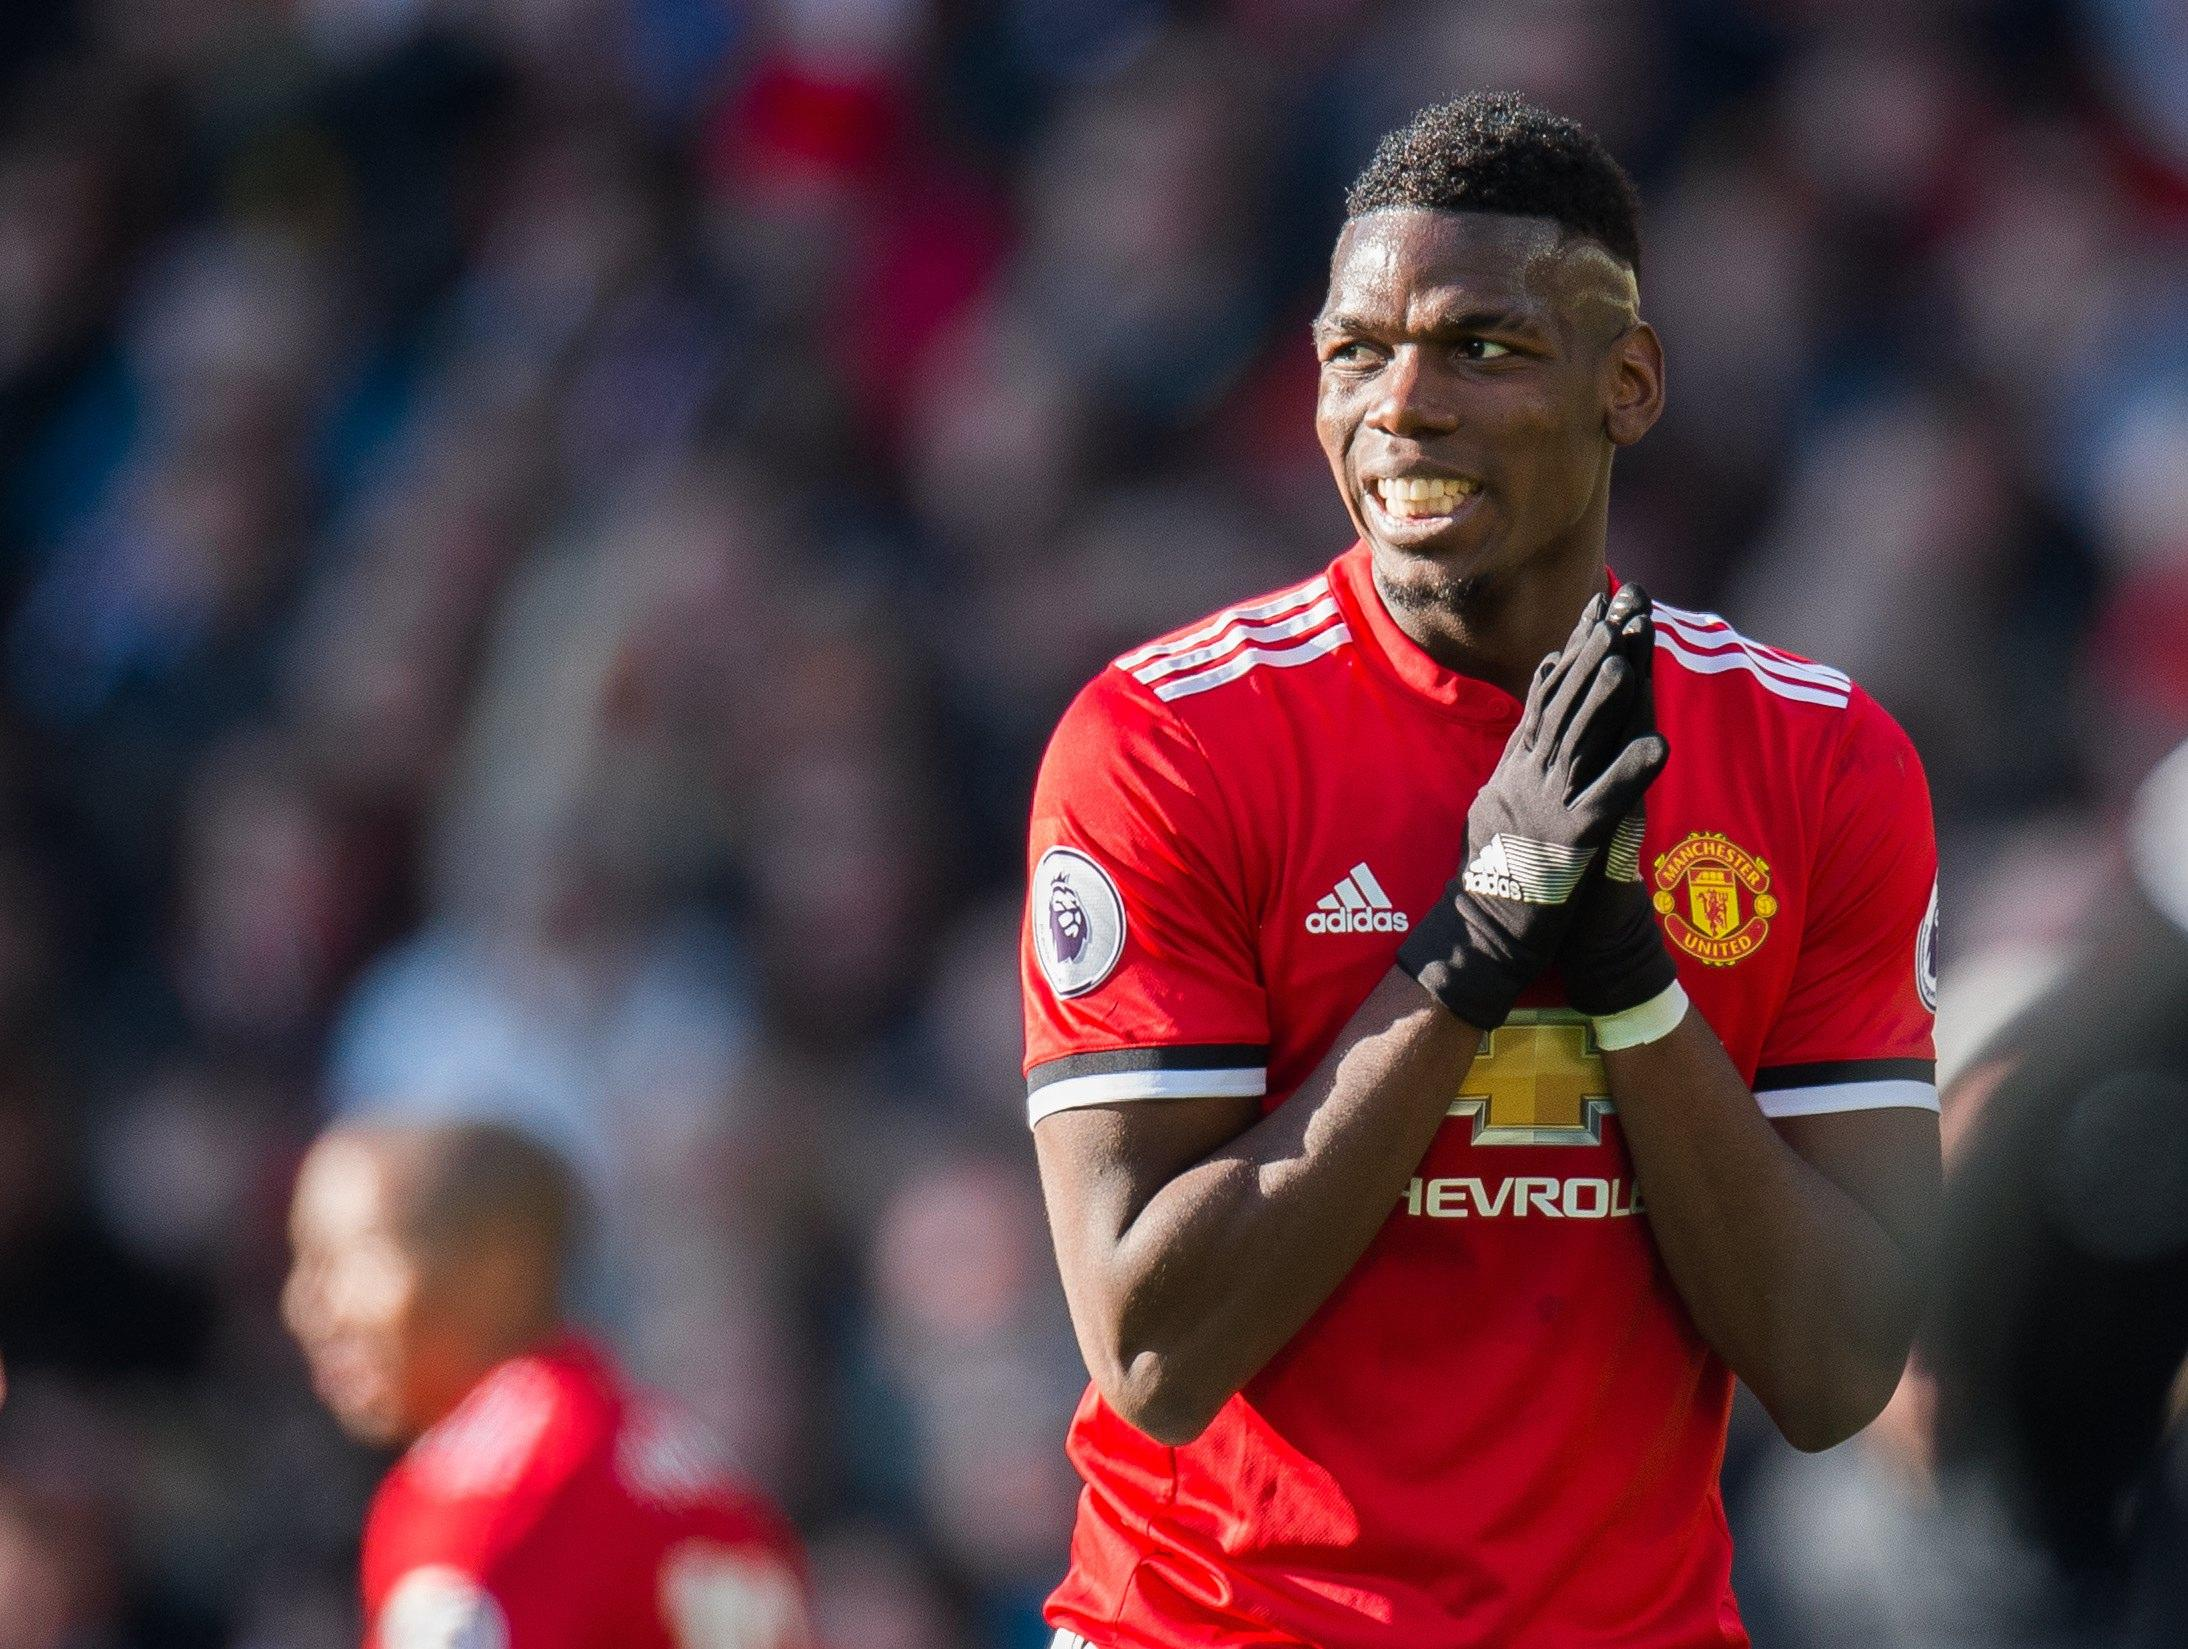 Paul Pogba is set to miss Man United's game against Liverpool with injury